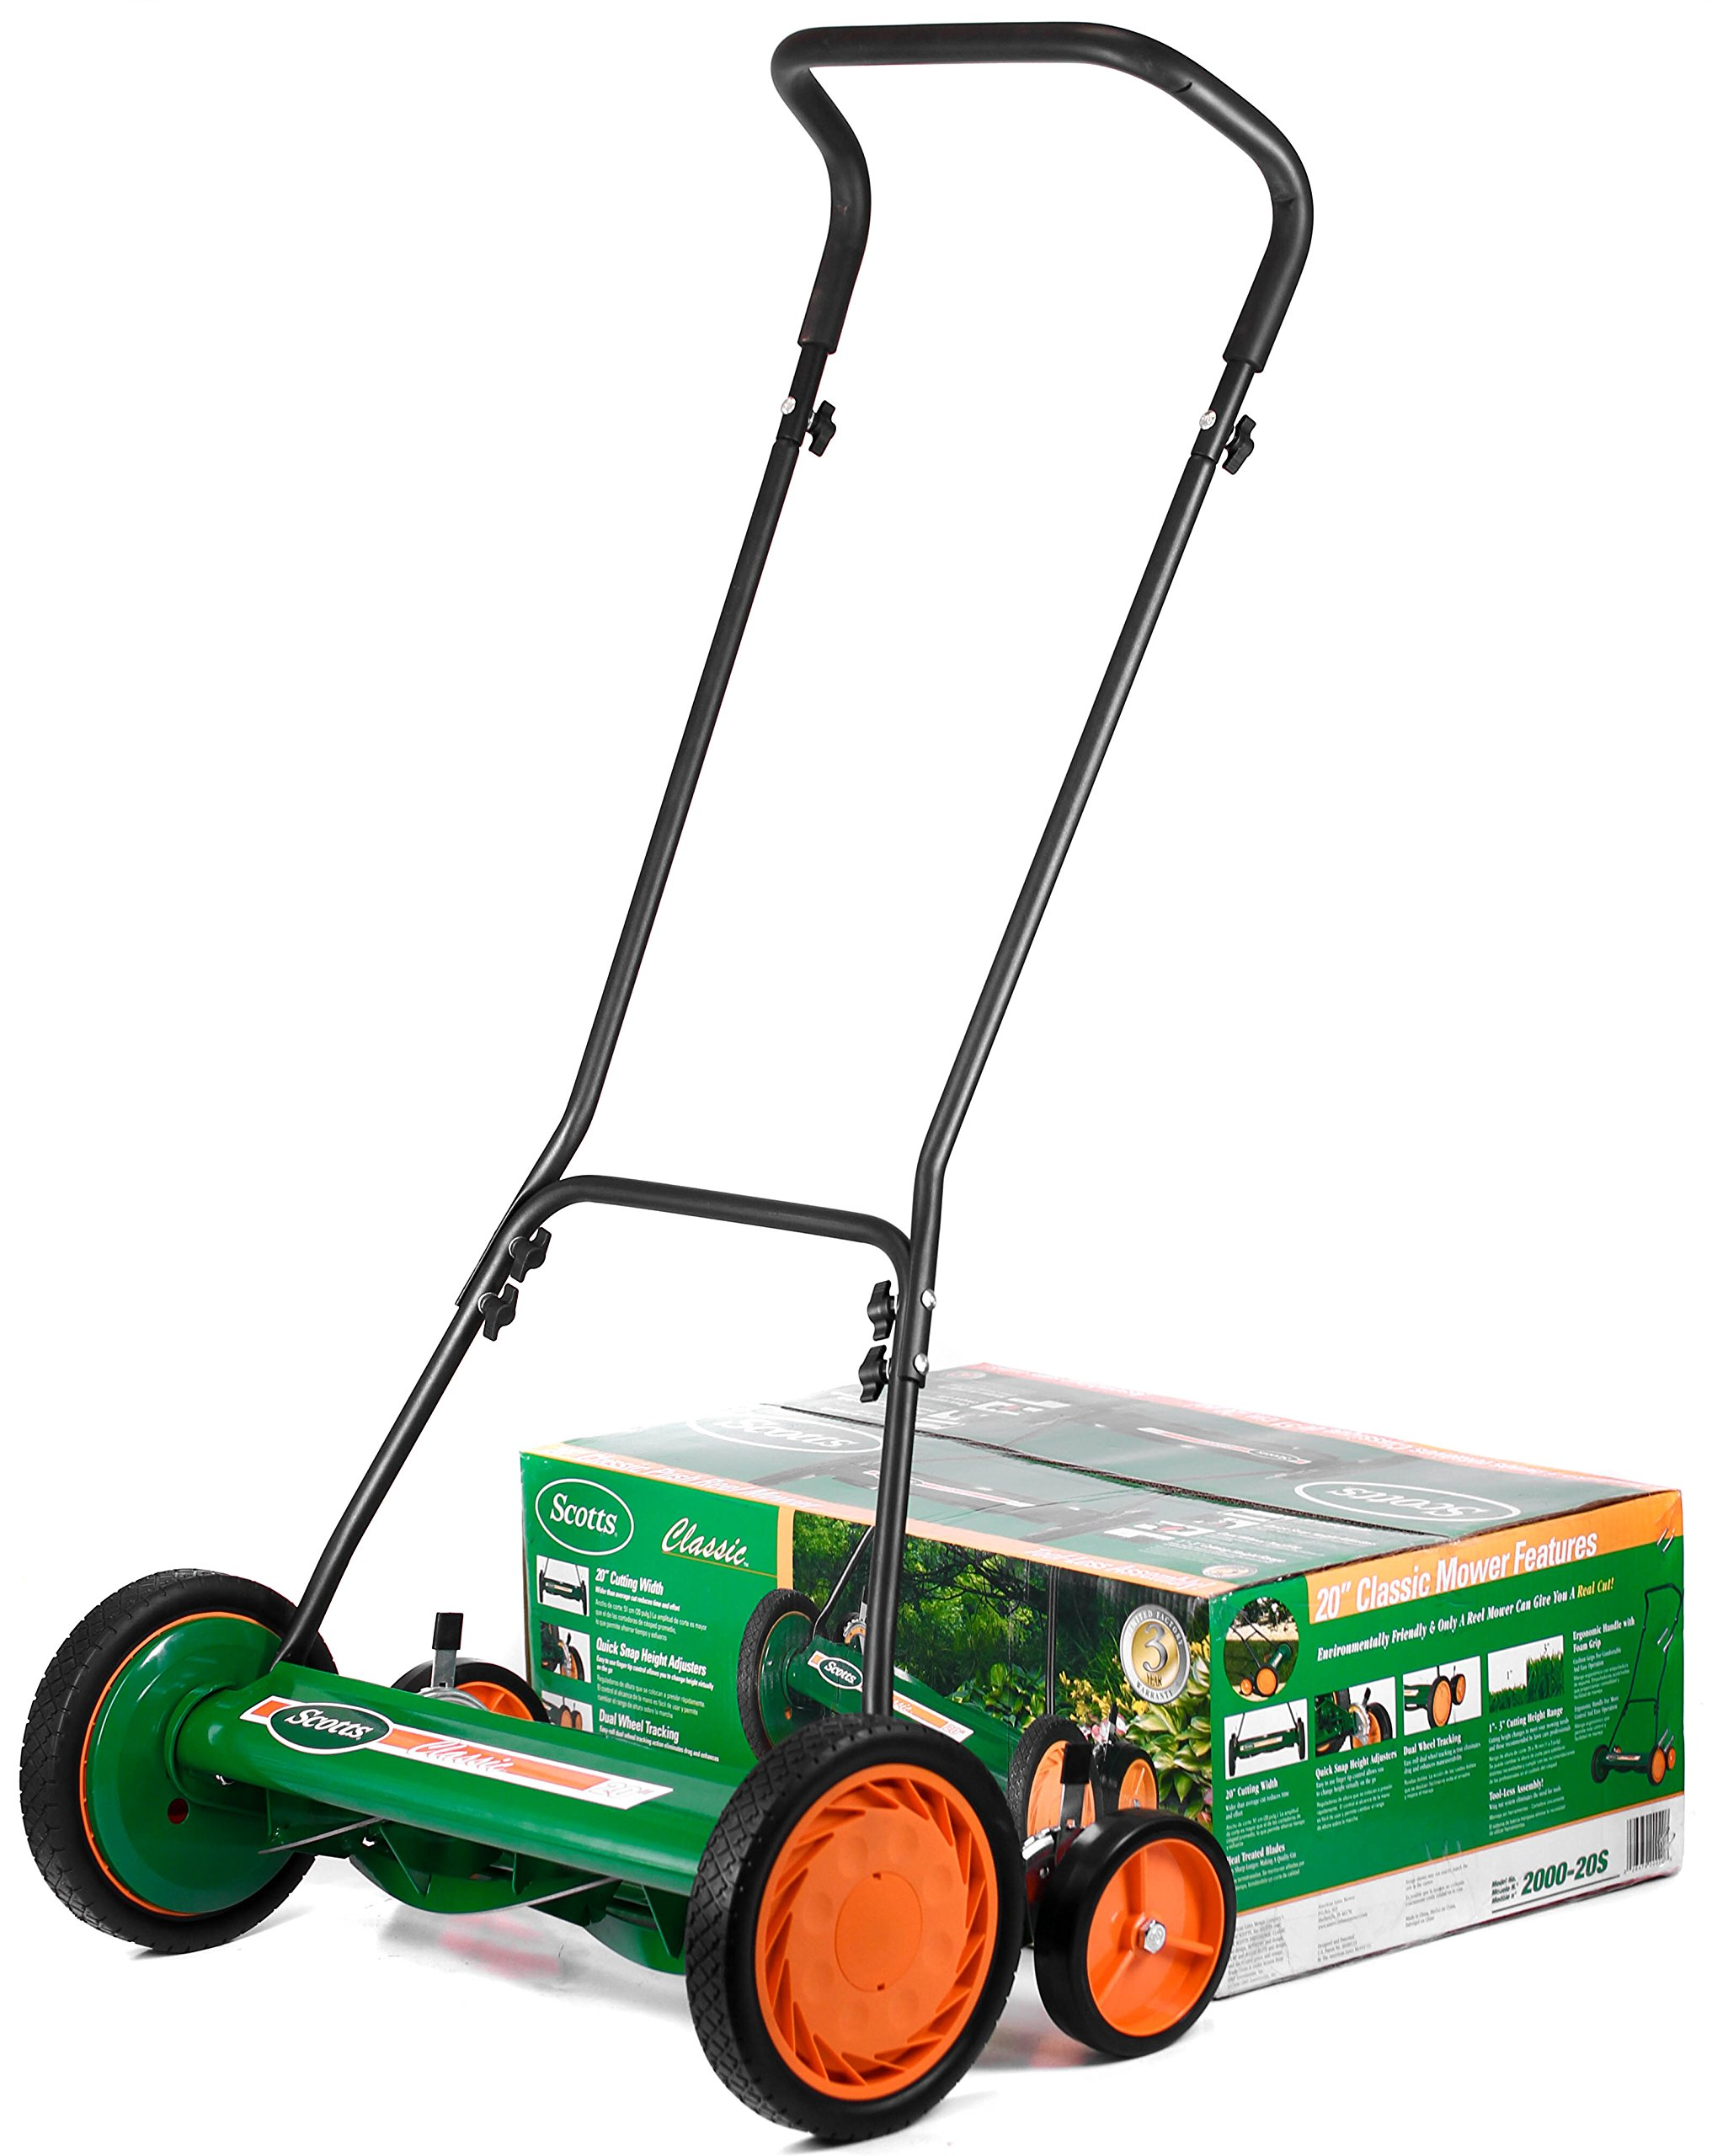 """Scotts Outdoor Power Tools 60362S 21-Inch 62-Volt Cordless Self-Propelled Lawn Mower, LED Lights, Batteries, (1) 4Ah, (1… 6 Powered by 62-Volt 5Ah lithium-ion battery and fast charger included; Auto-adjust, 2-speed brushless motor for gas-like power, increased efficiency, and run-time 21"""" cutting width with durable steel deck; Single point cutting height adjustment lever; Steel tube front guard and lift handle 3-in-1 functionality provides a mulching, side discharge, and rear-bagging system; Grass catcher with 16 Gal bag capacity; Adjustable cutting height of 1.5""""-3.75"""""""